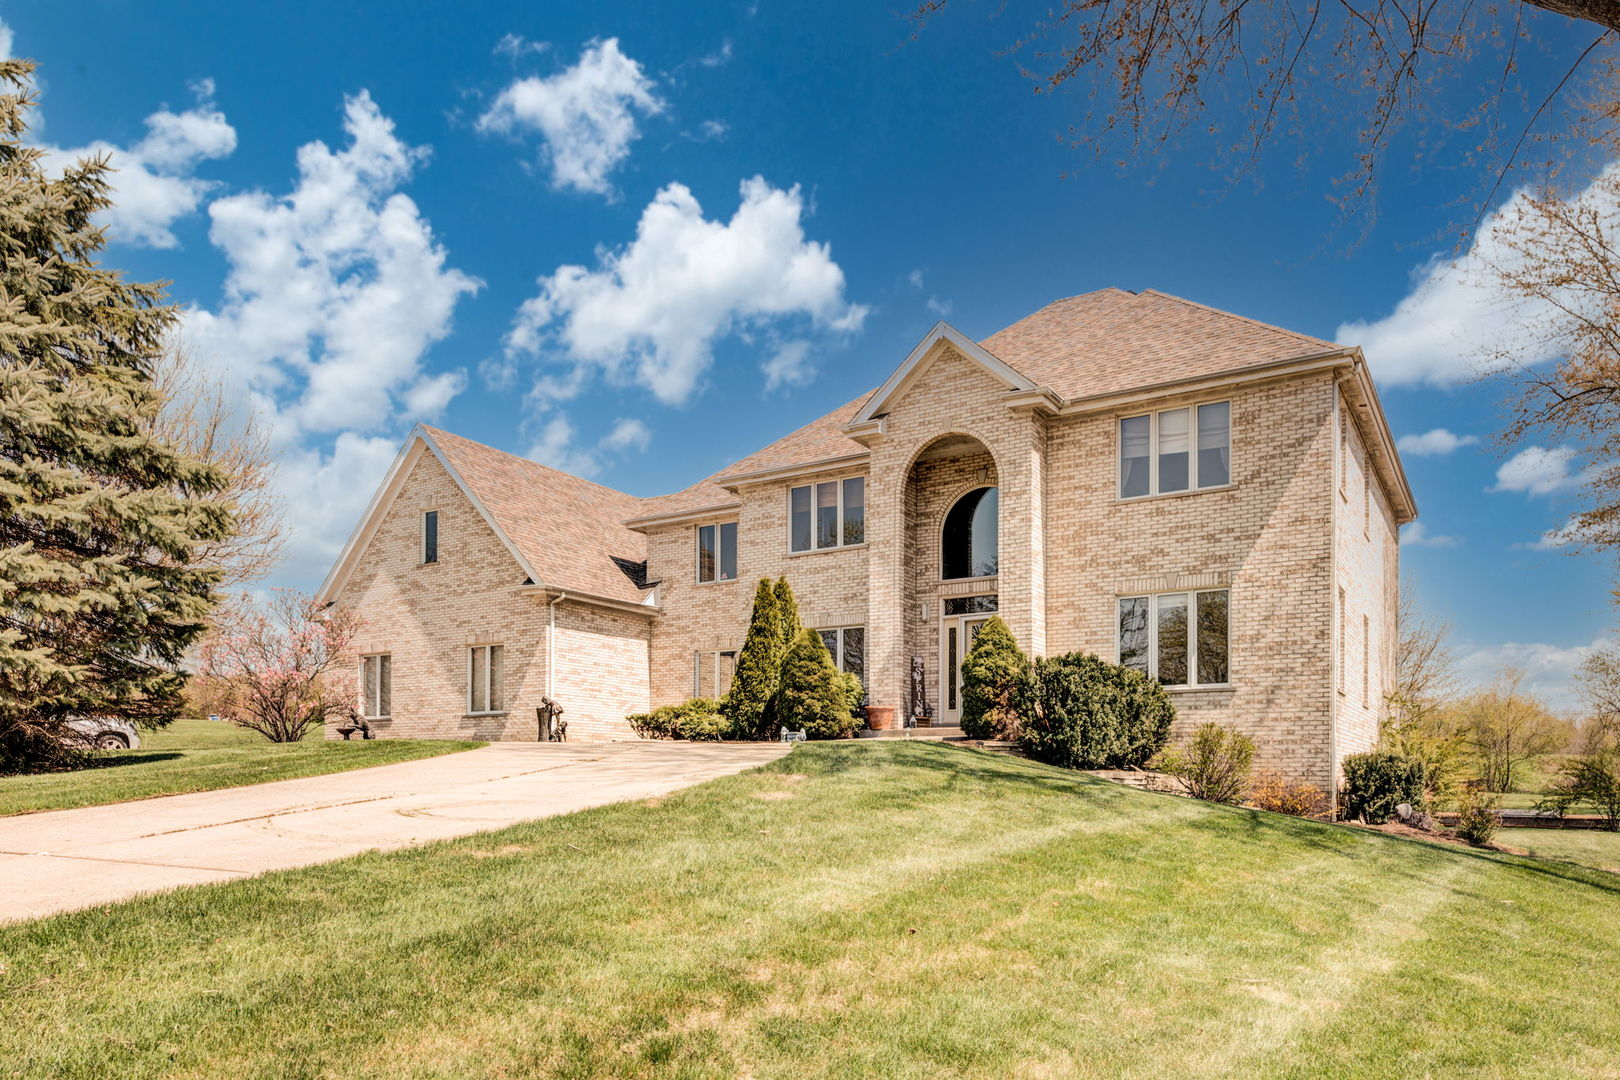 169 Sycamore Drive, Hawthorn Woods, Il 60047